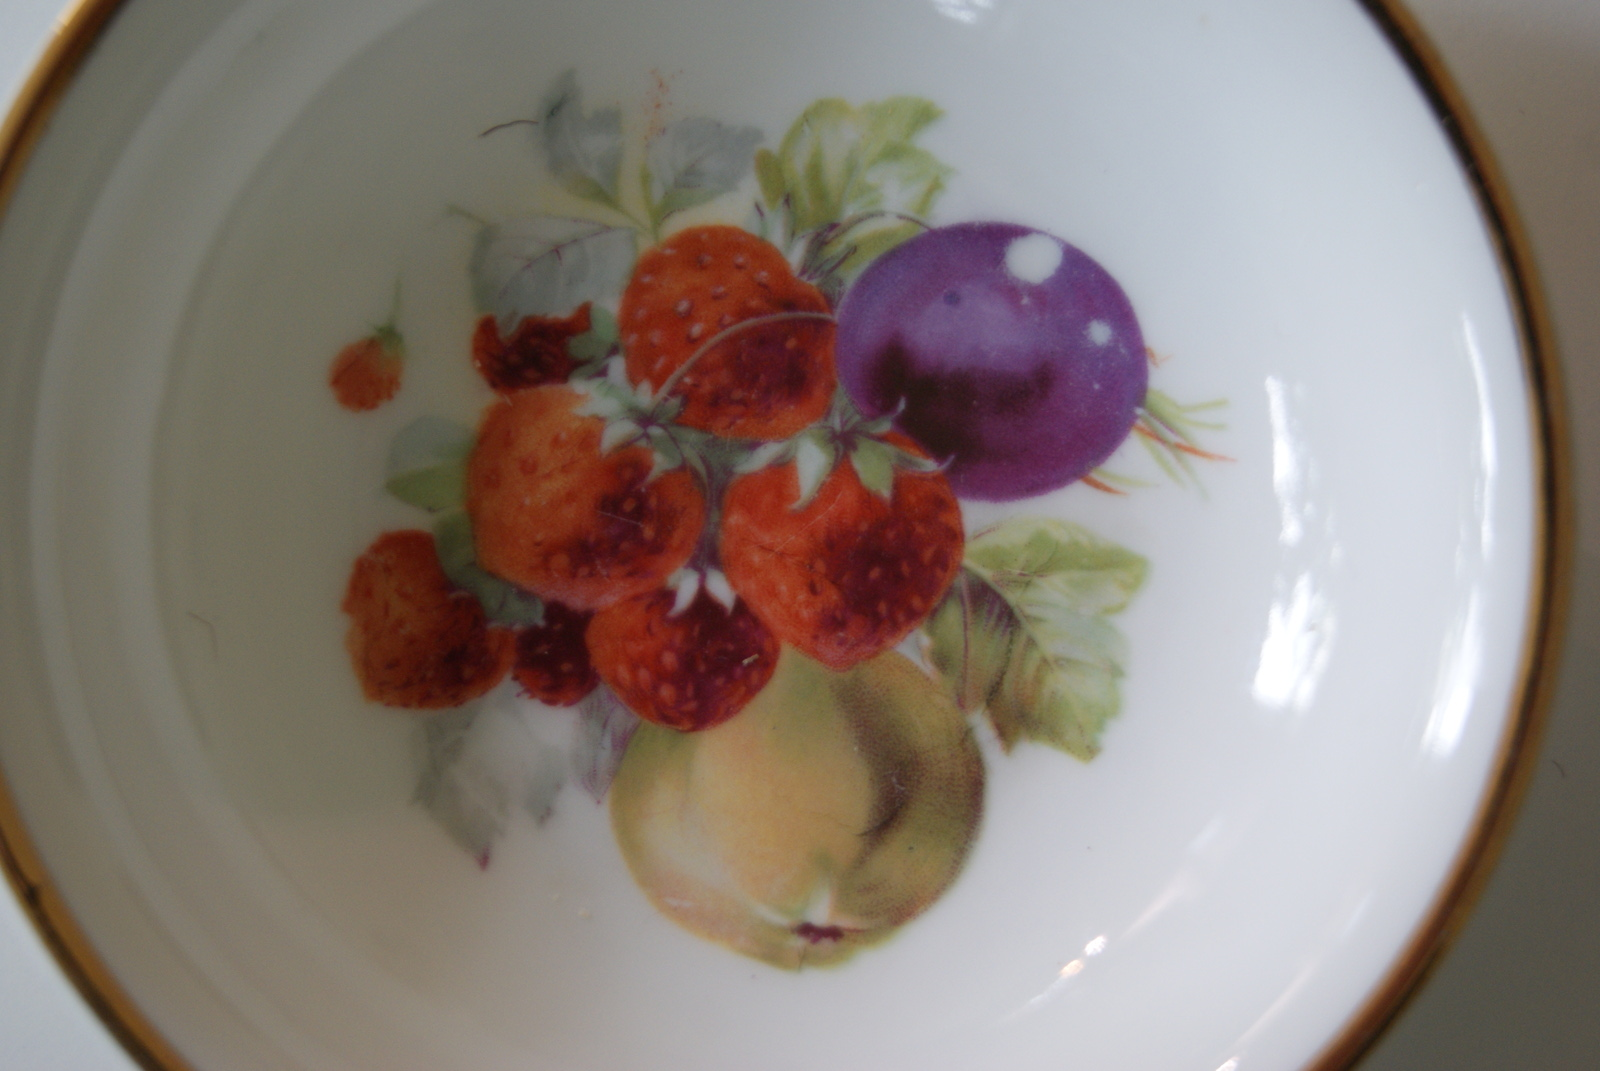 Porsgrund bowl with fruits - plums, pears and strawberries